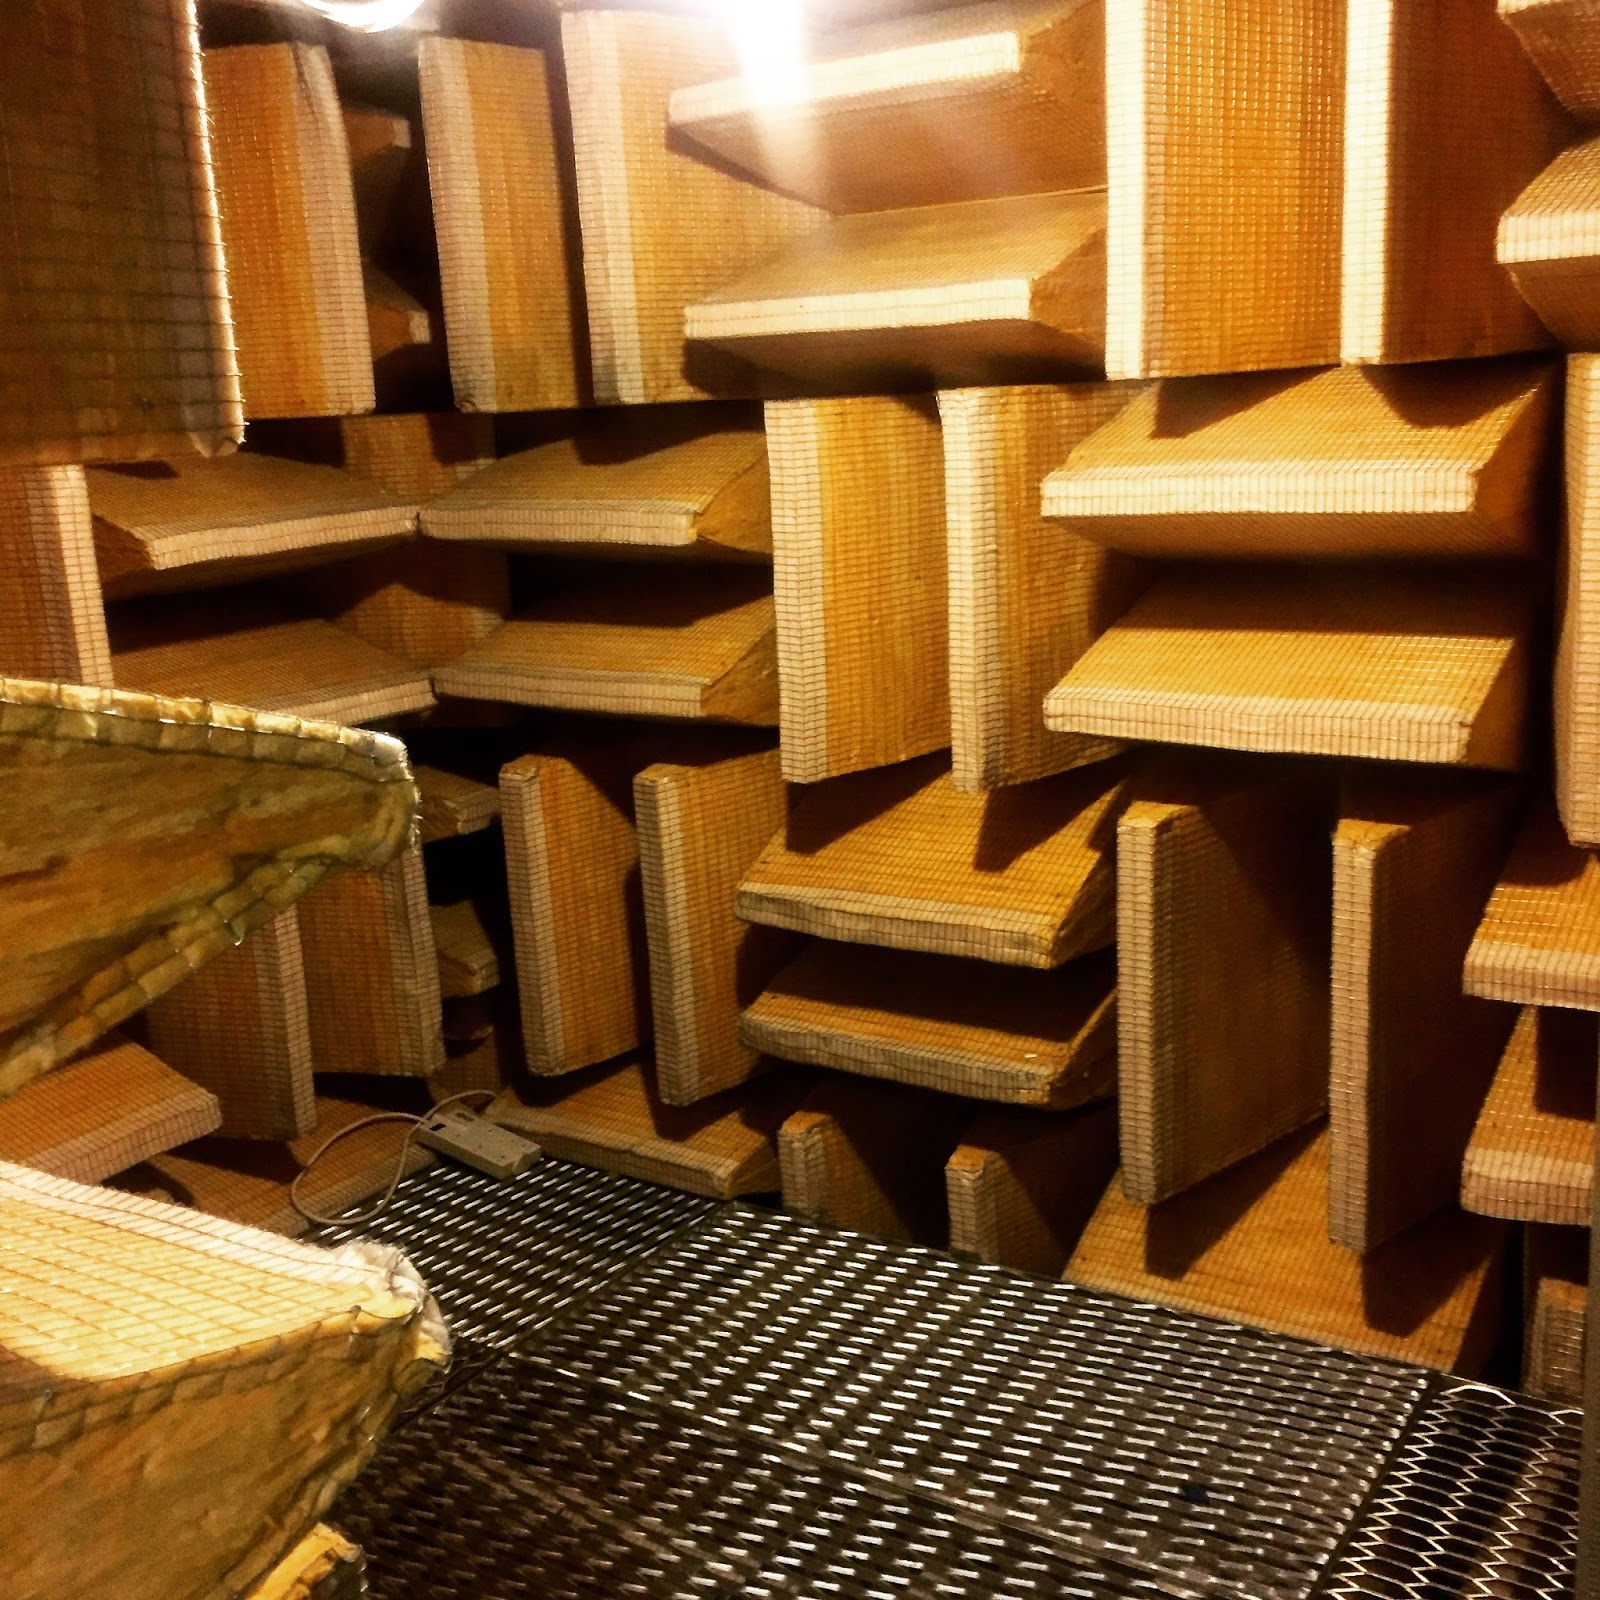 Sense & the City: SOUND: The anechoic chamber at the Cooper